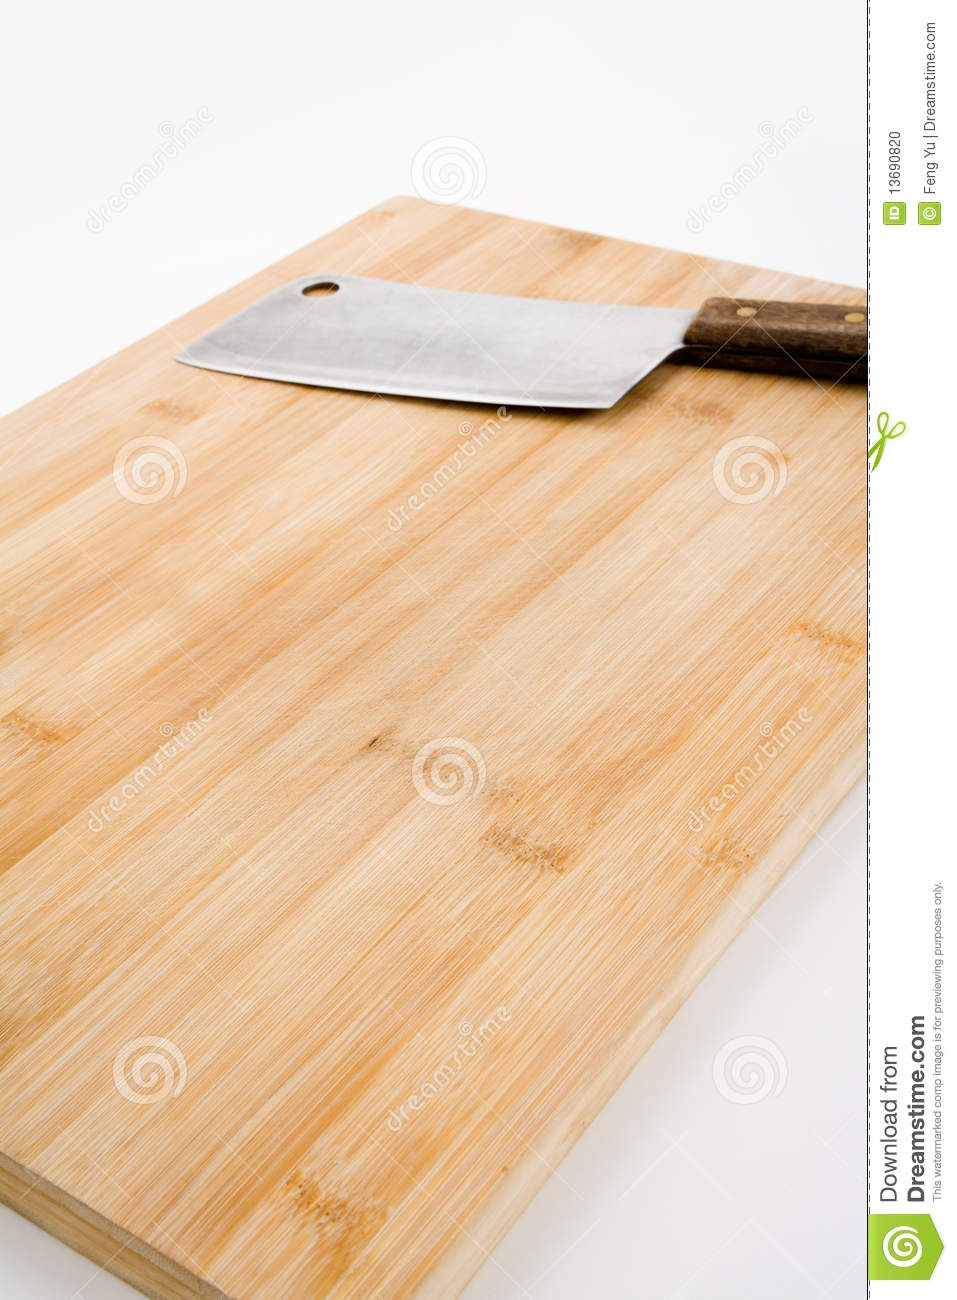 Cutting Board And Kitchen Knife Stock Photo Image 13690820